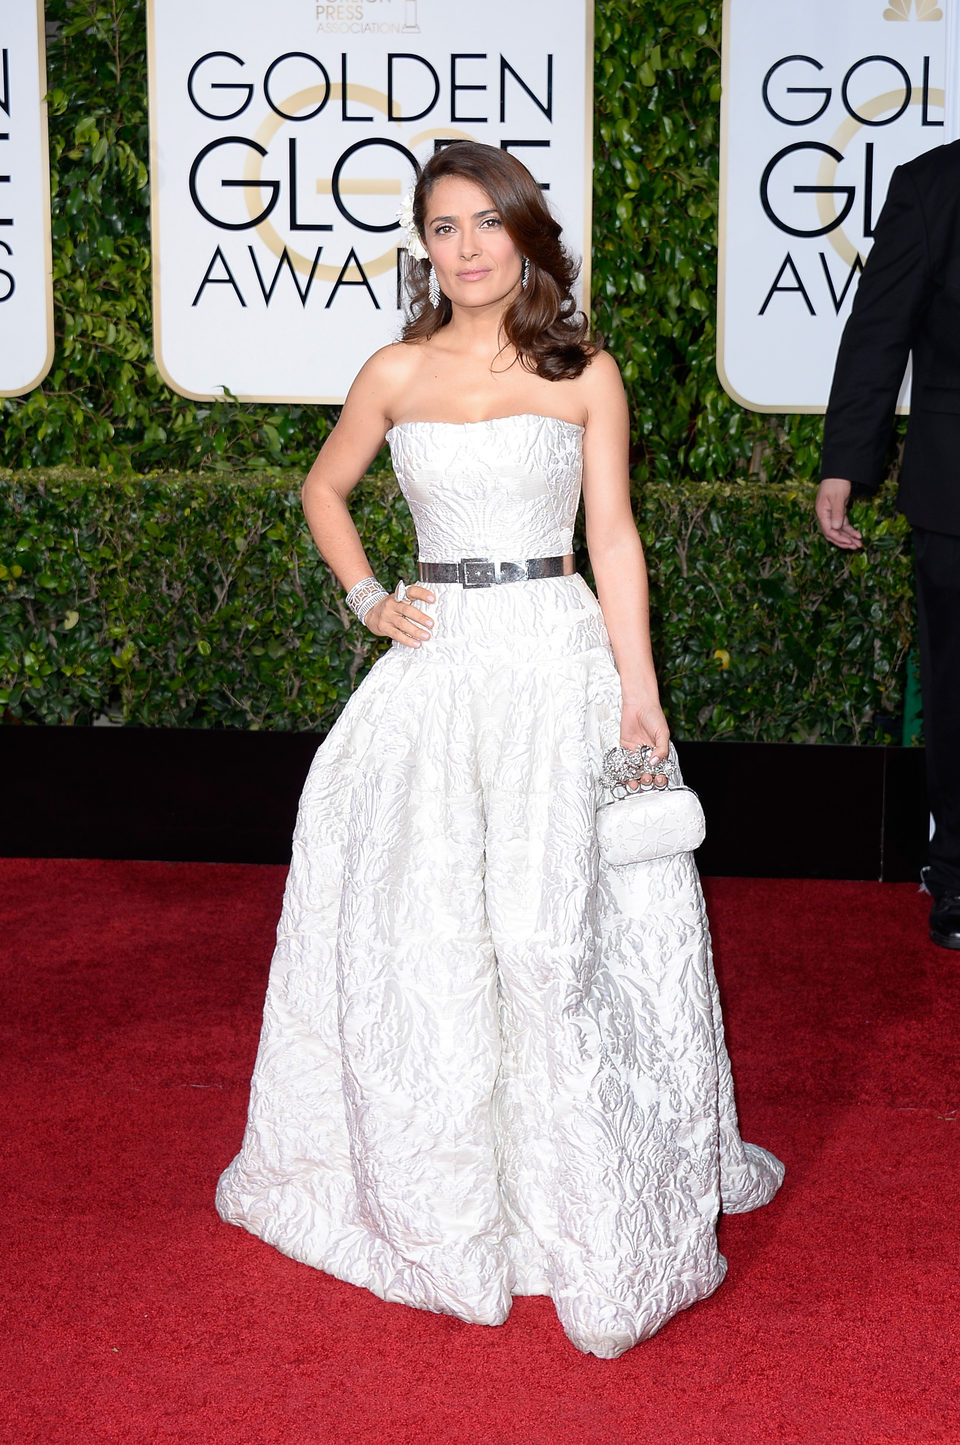 Salma Hayek at the Golden Globes 2015 red carpet